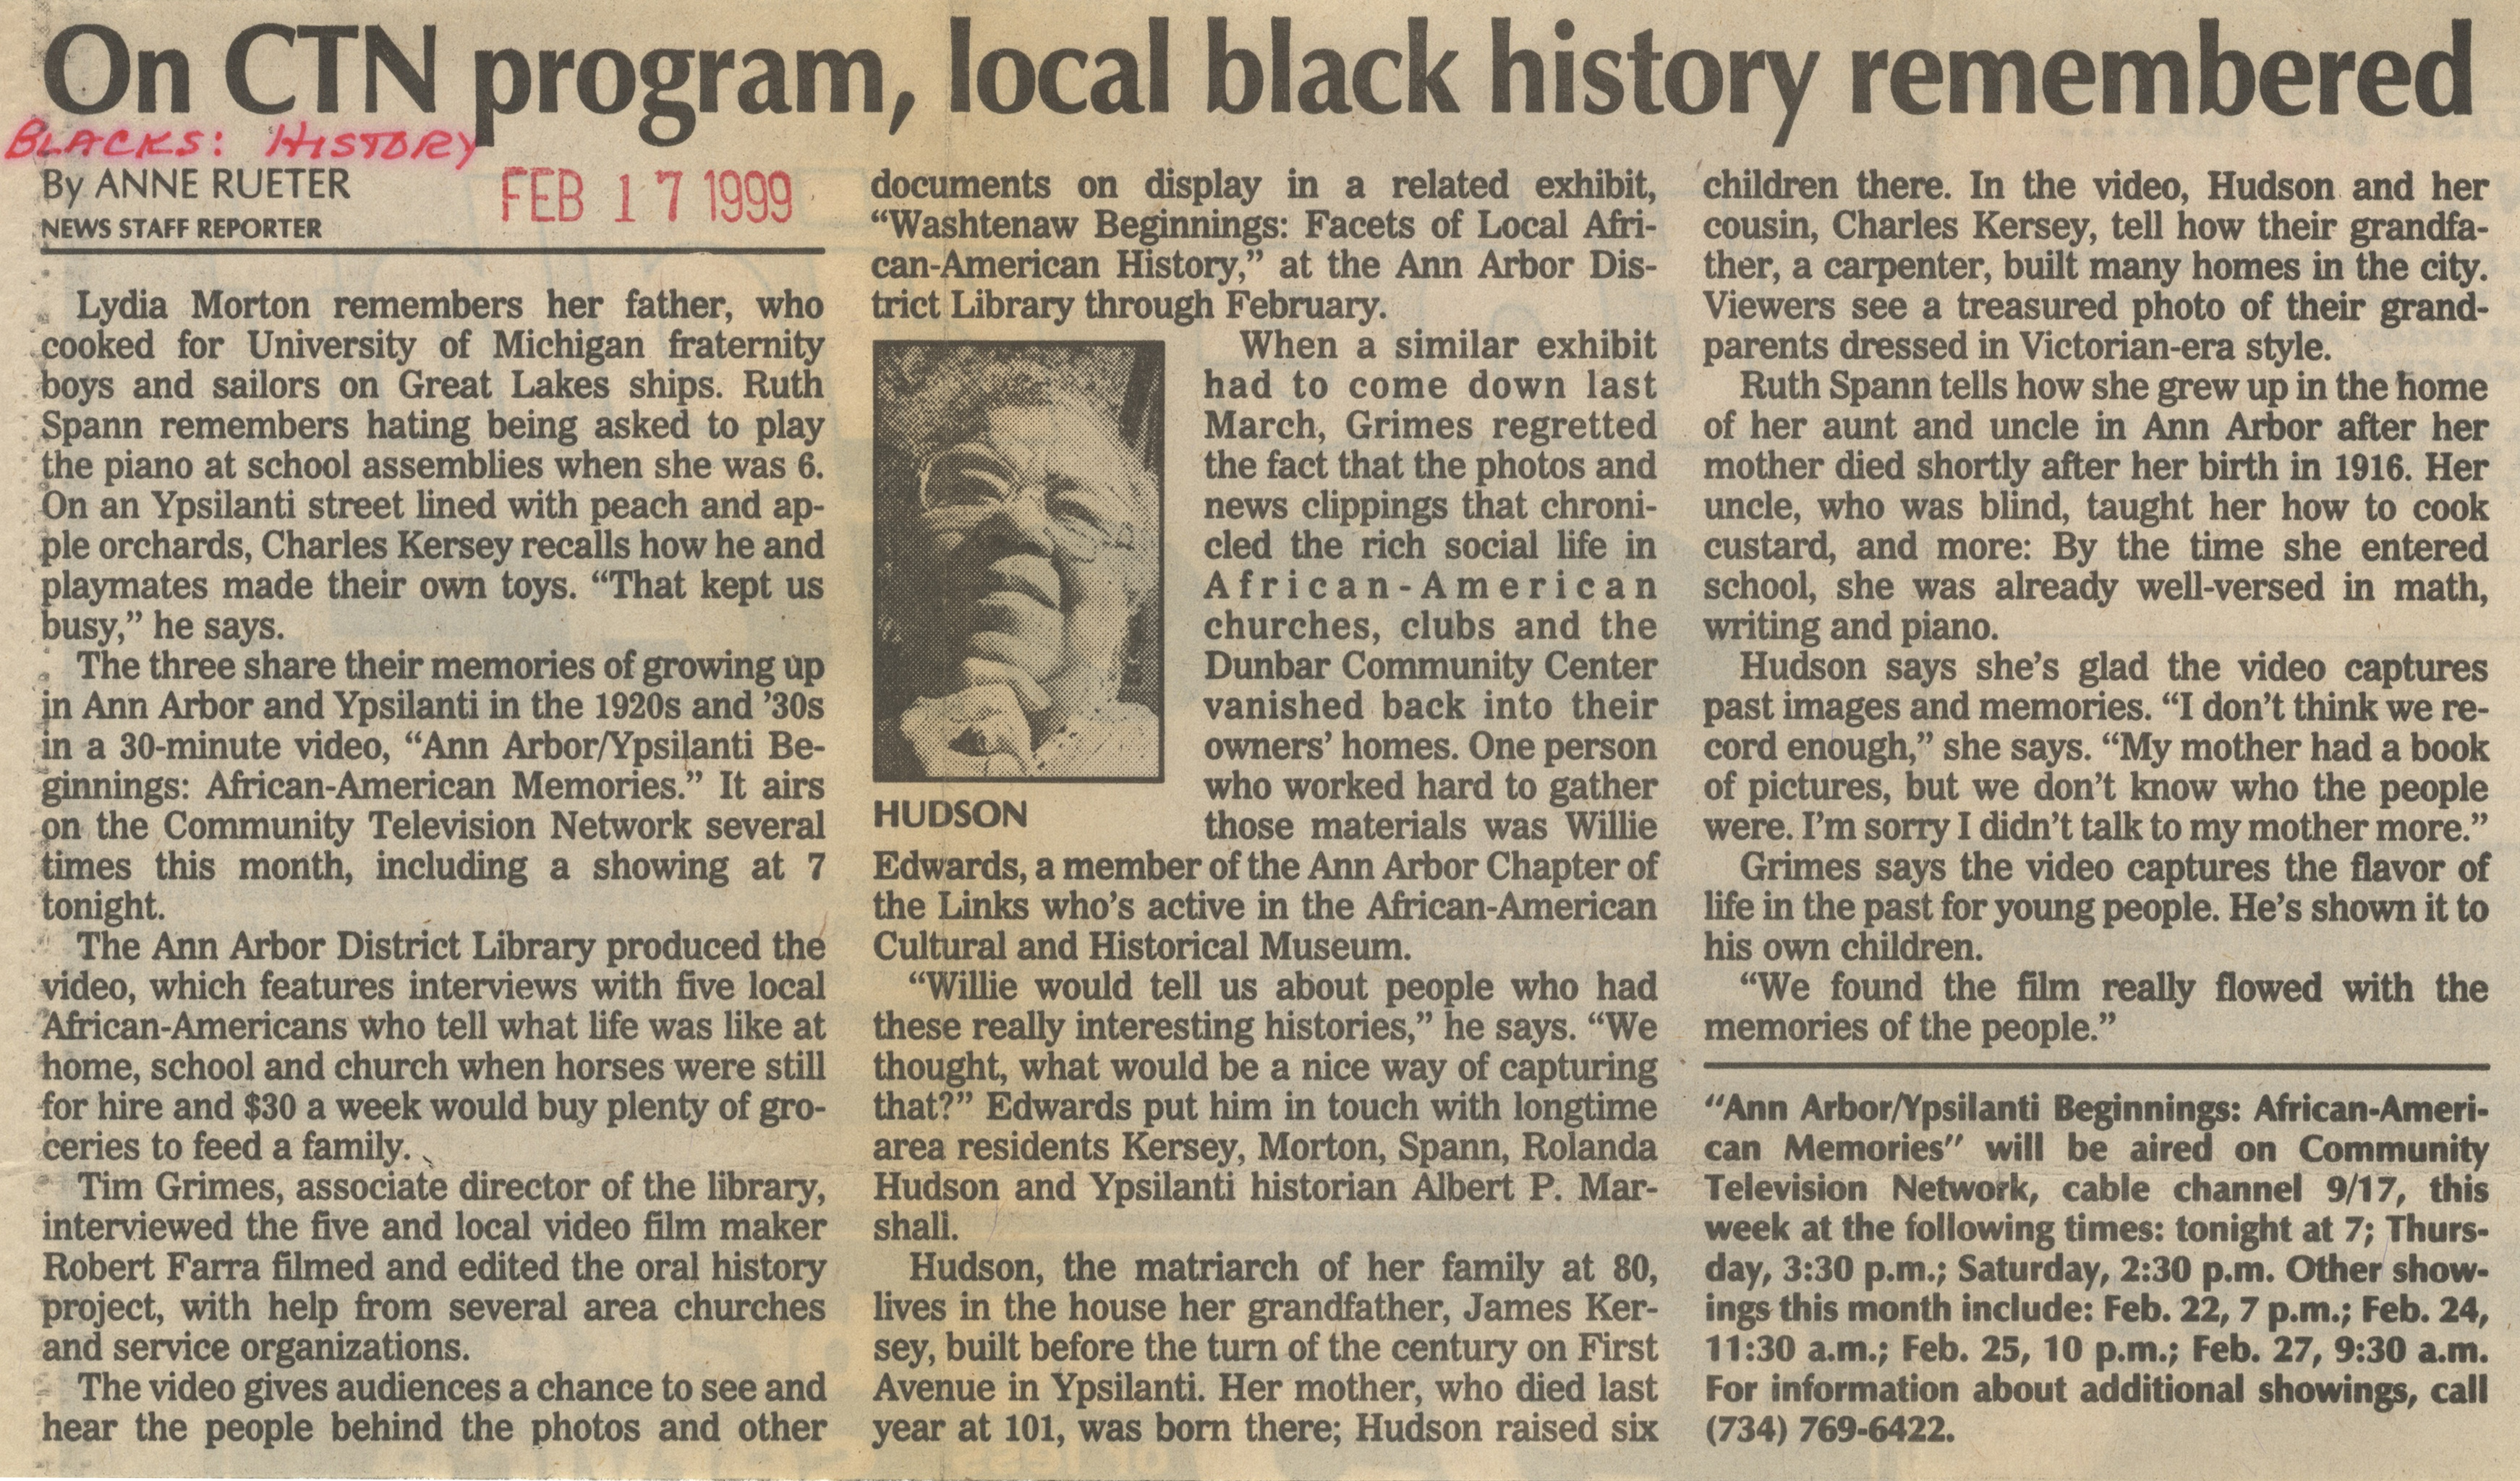 On CTN Program, Local Black History Remembered image